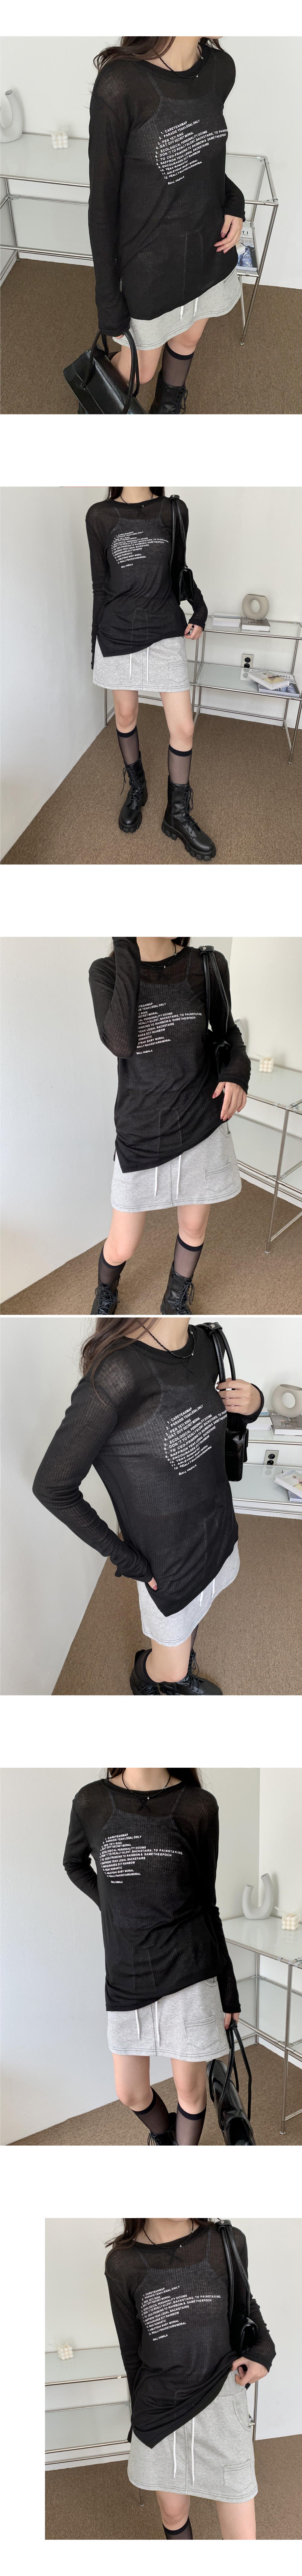 In the lettering slit see-through long-sleeved T-shirt